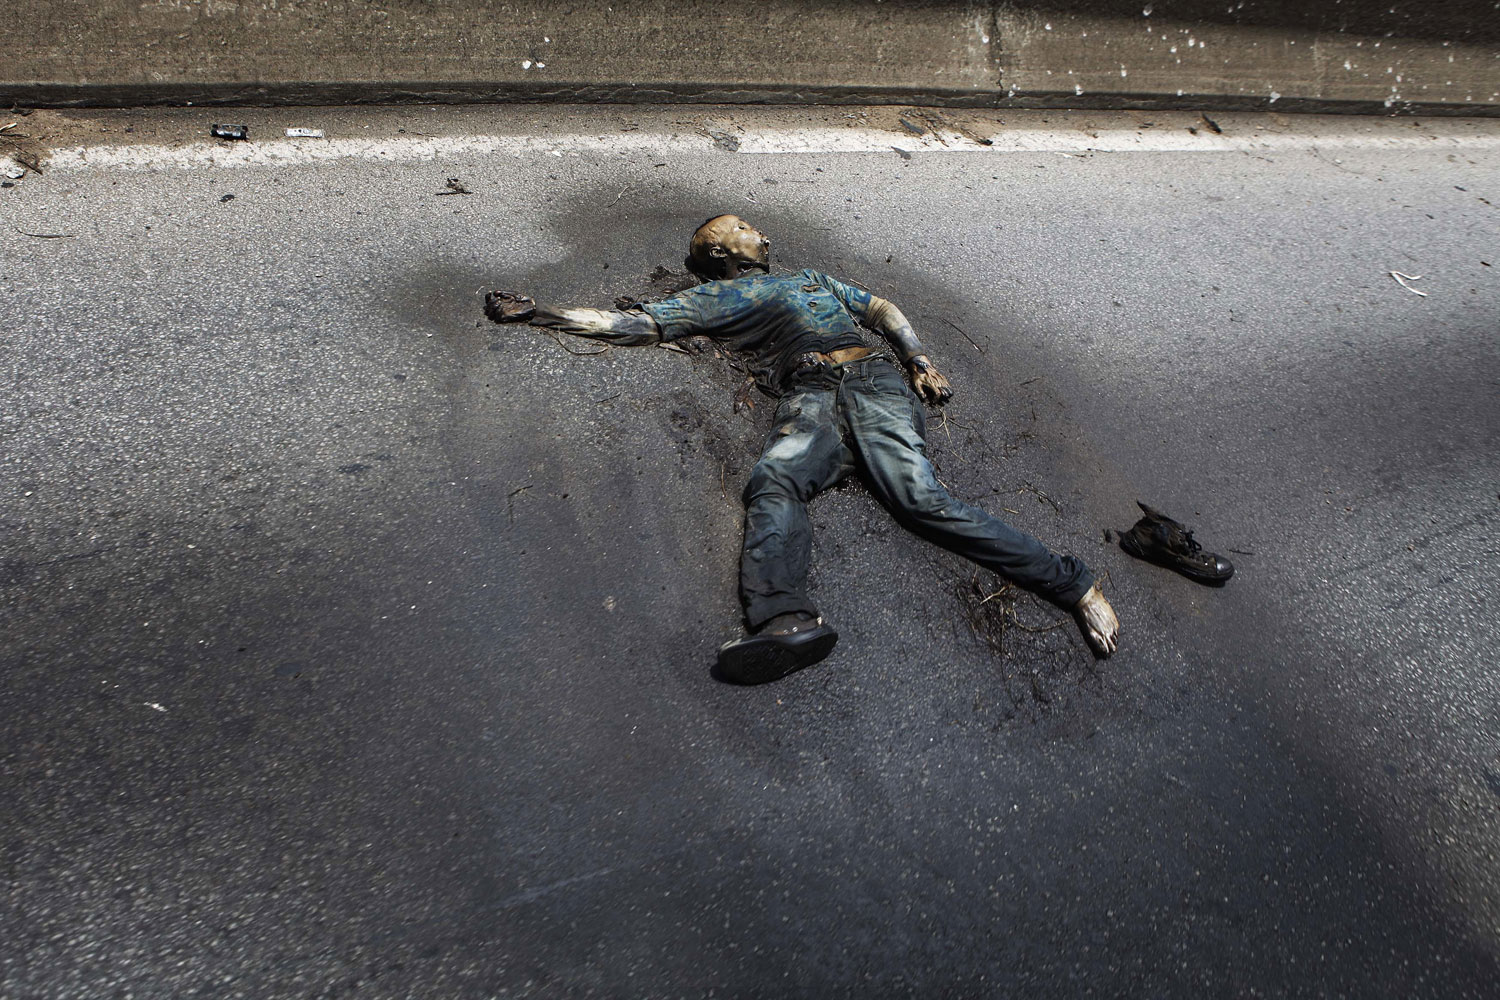 April 14, 2011. A decomposing body lies on a road in Abidjan. Ivory Coast's Laurent Gbagbo was overthrown by Ivorians, not by foreign powers, the United Nations said on Thursday amid rising criticism of its role in the removal of the former leader.